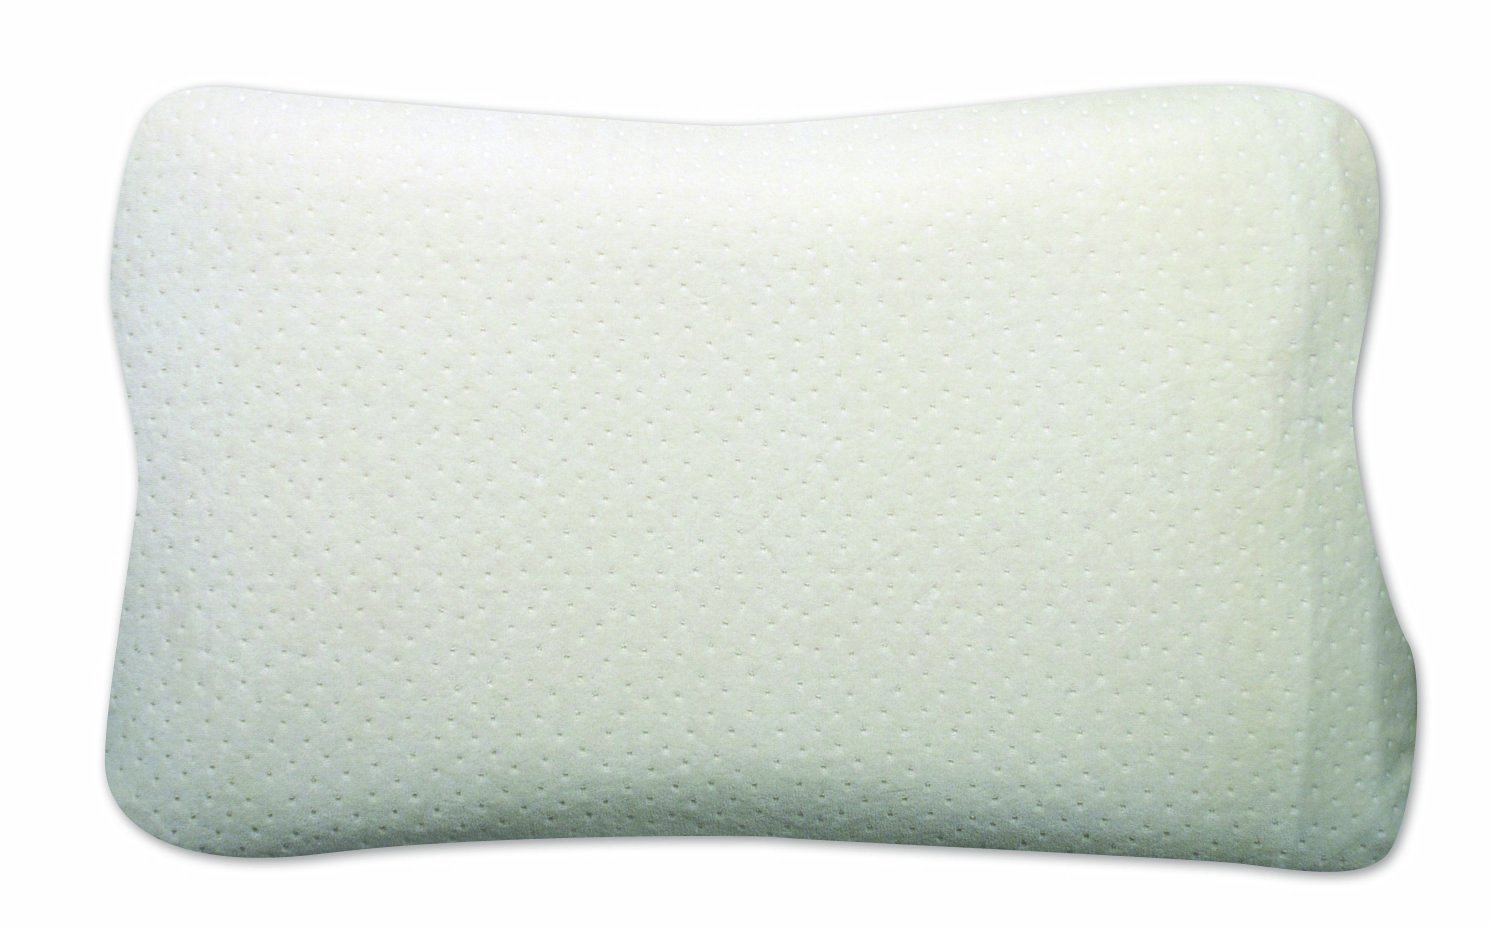 Ashley Roberts Sleep Systems Elegante Memory Foam Sculptured and Ventilated Pillow, King